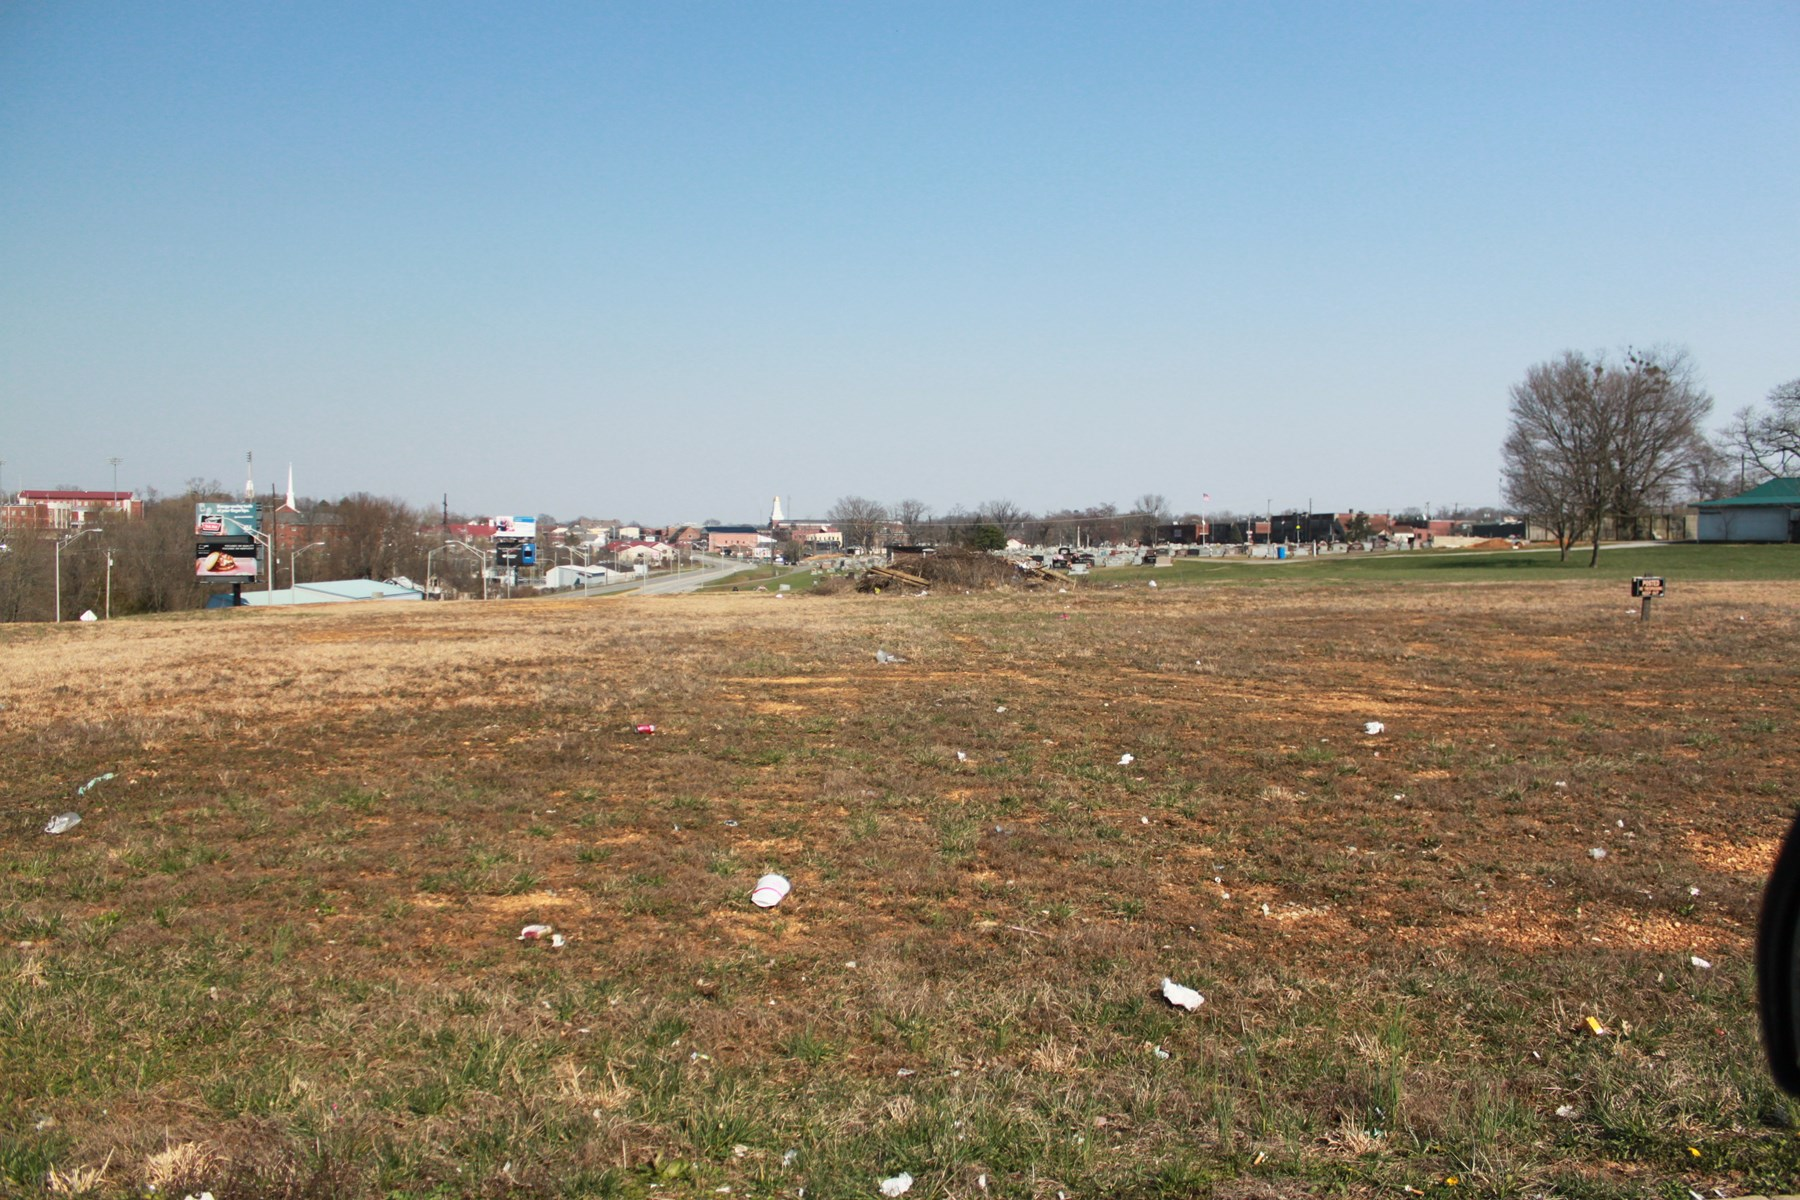 Multi-Use Development Land in Campbellsville, KY For sale